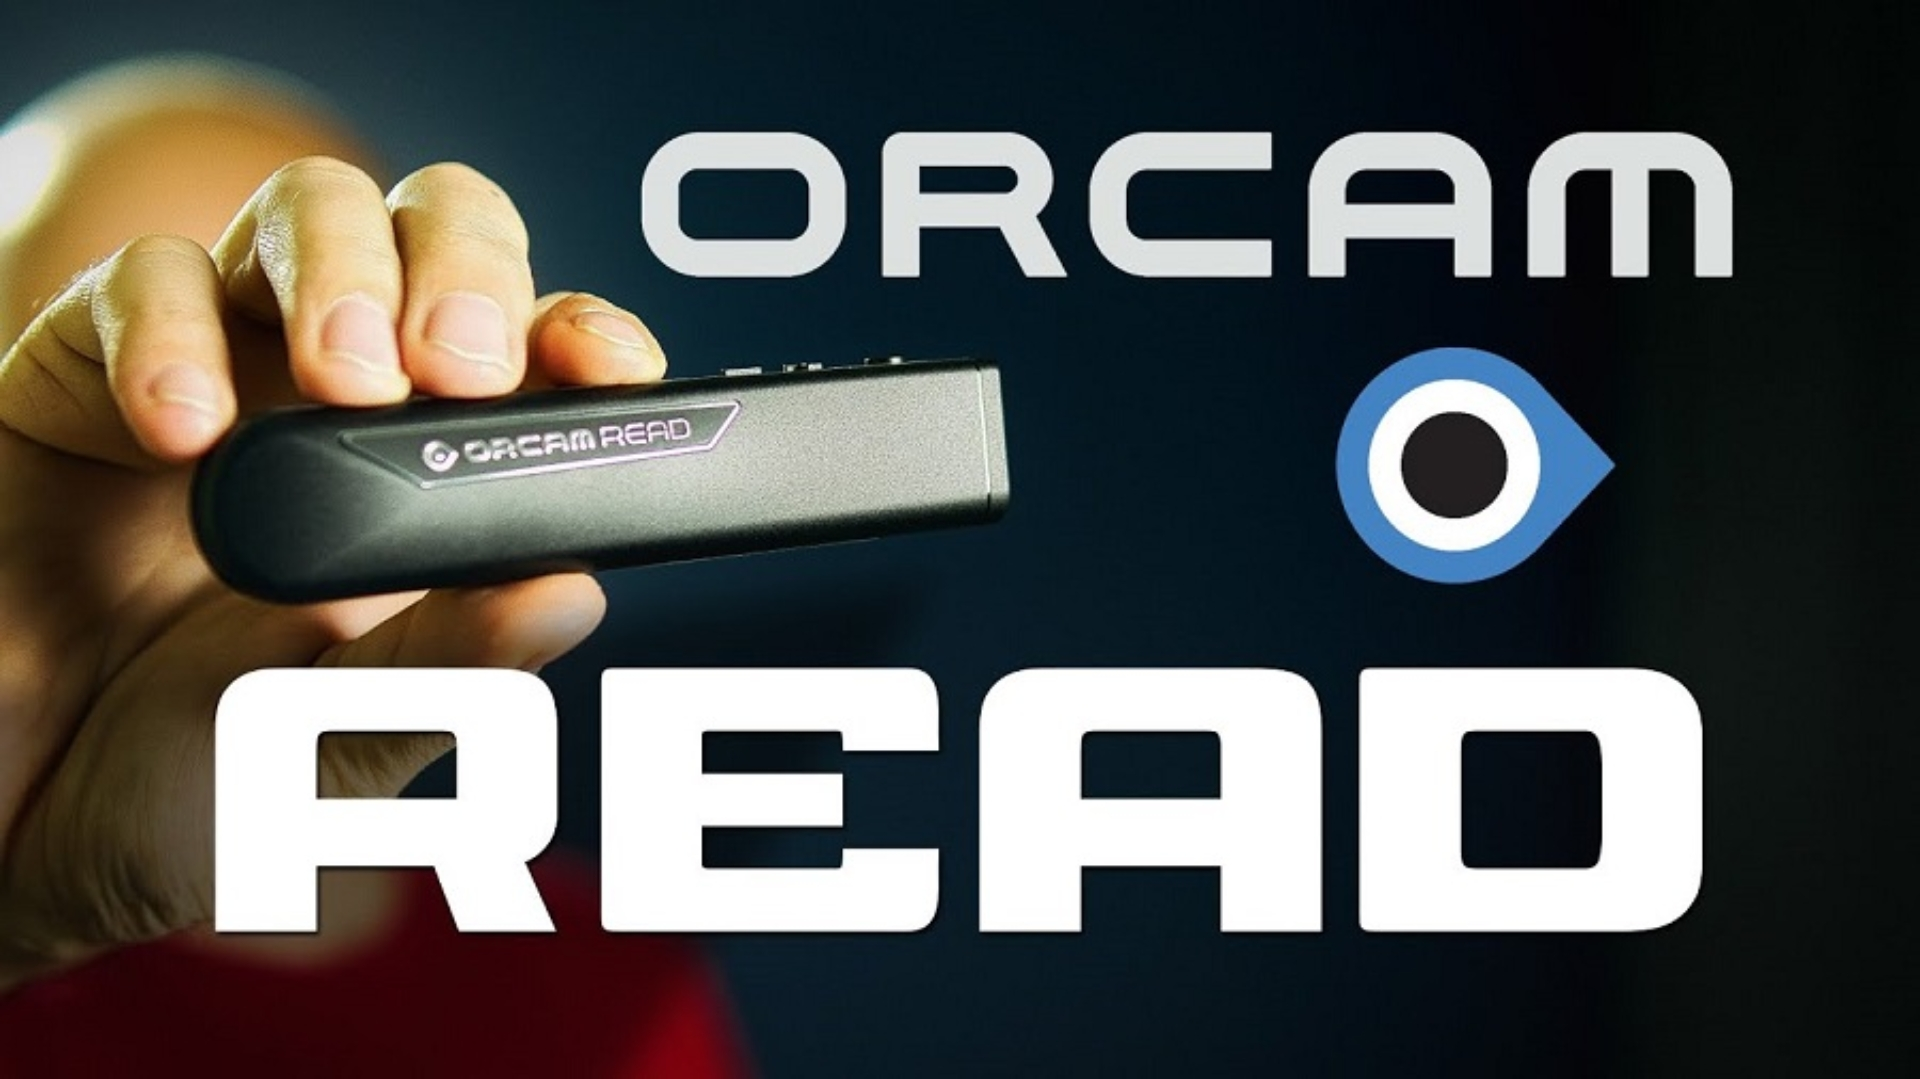 The OrCam READ